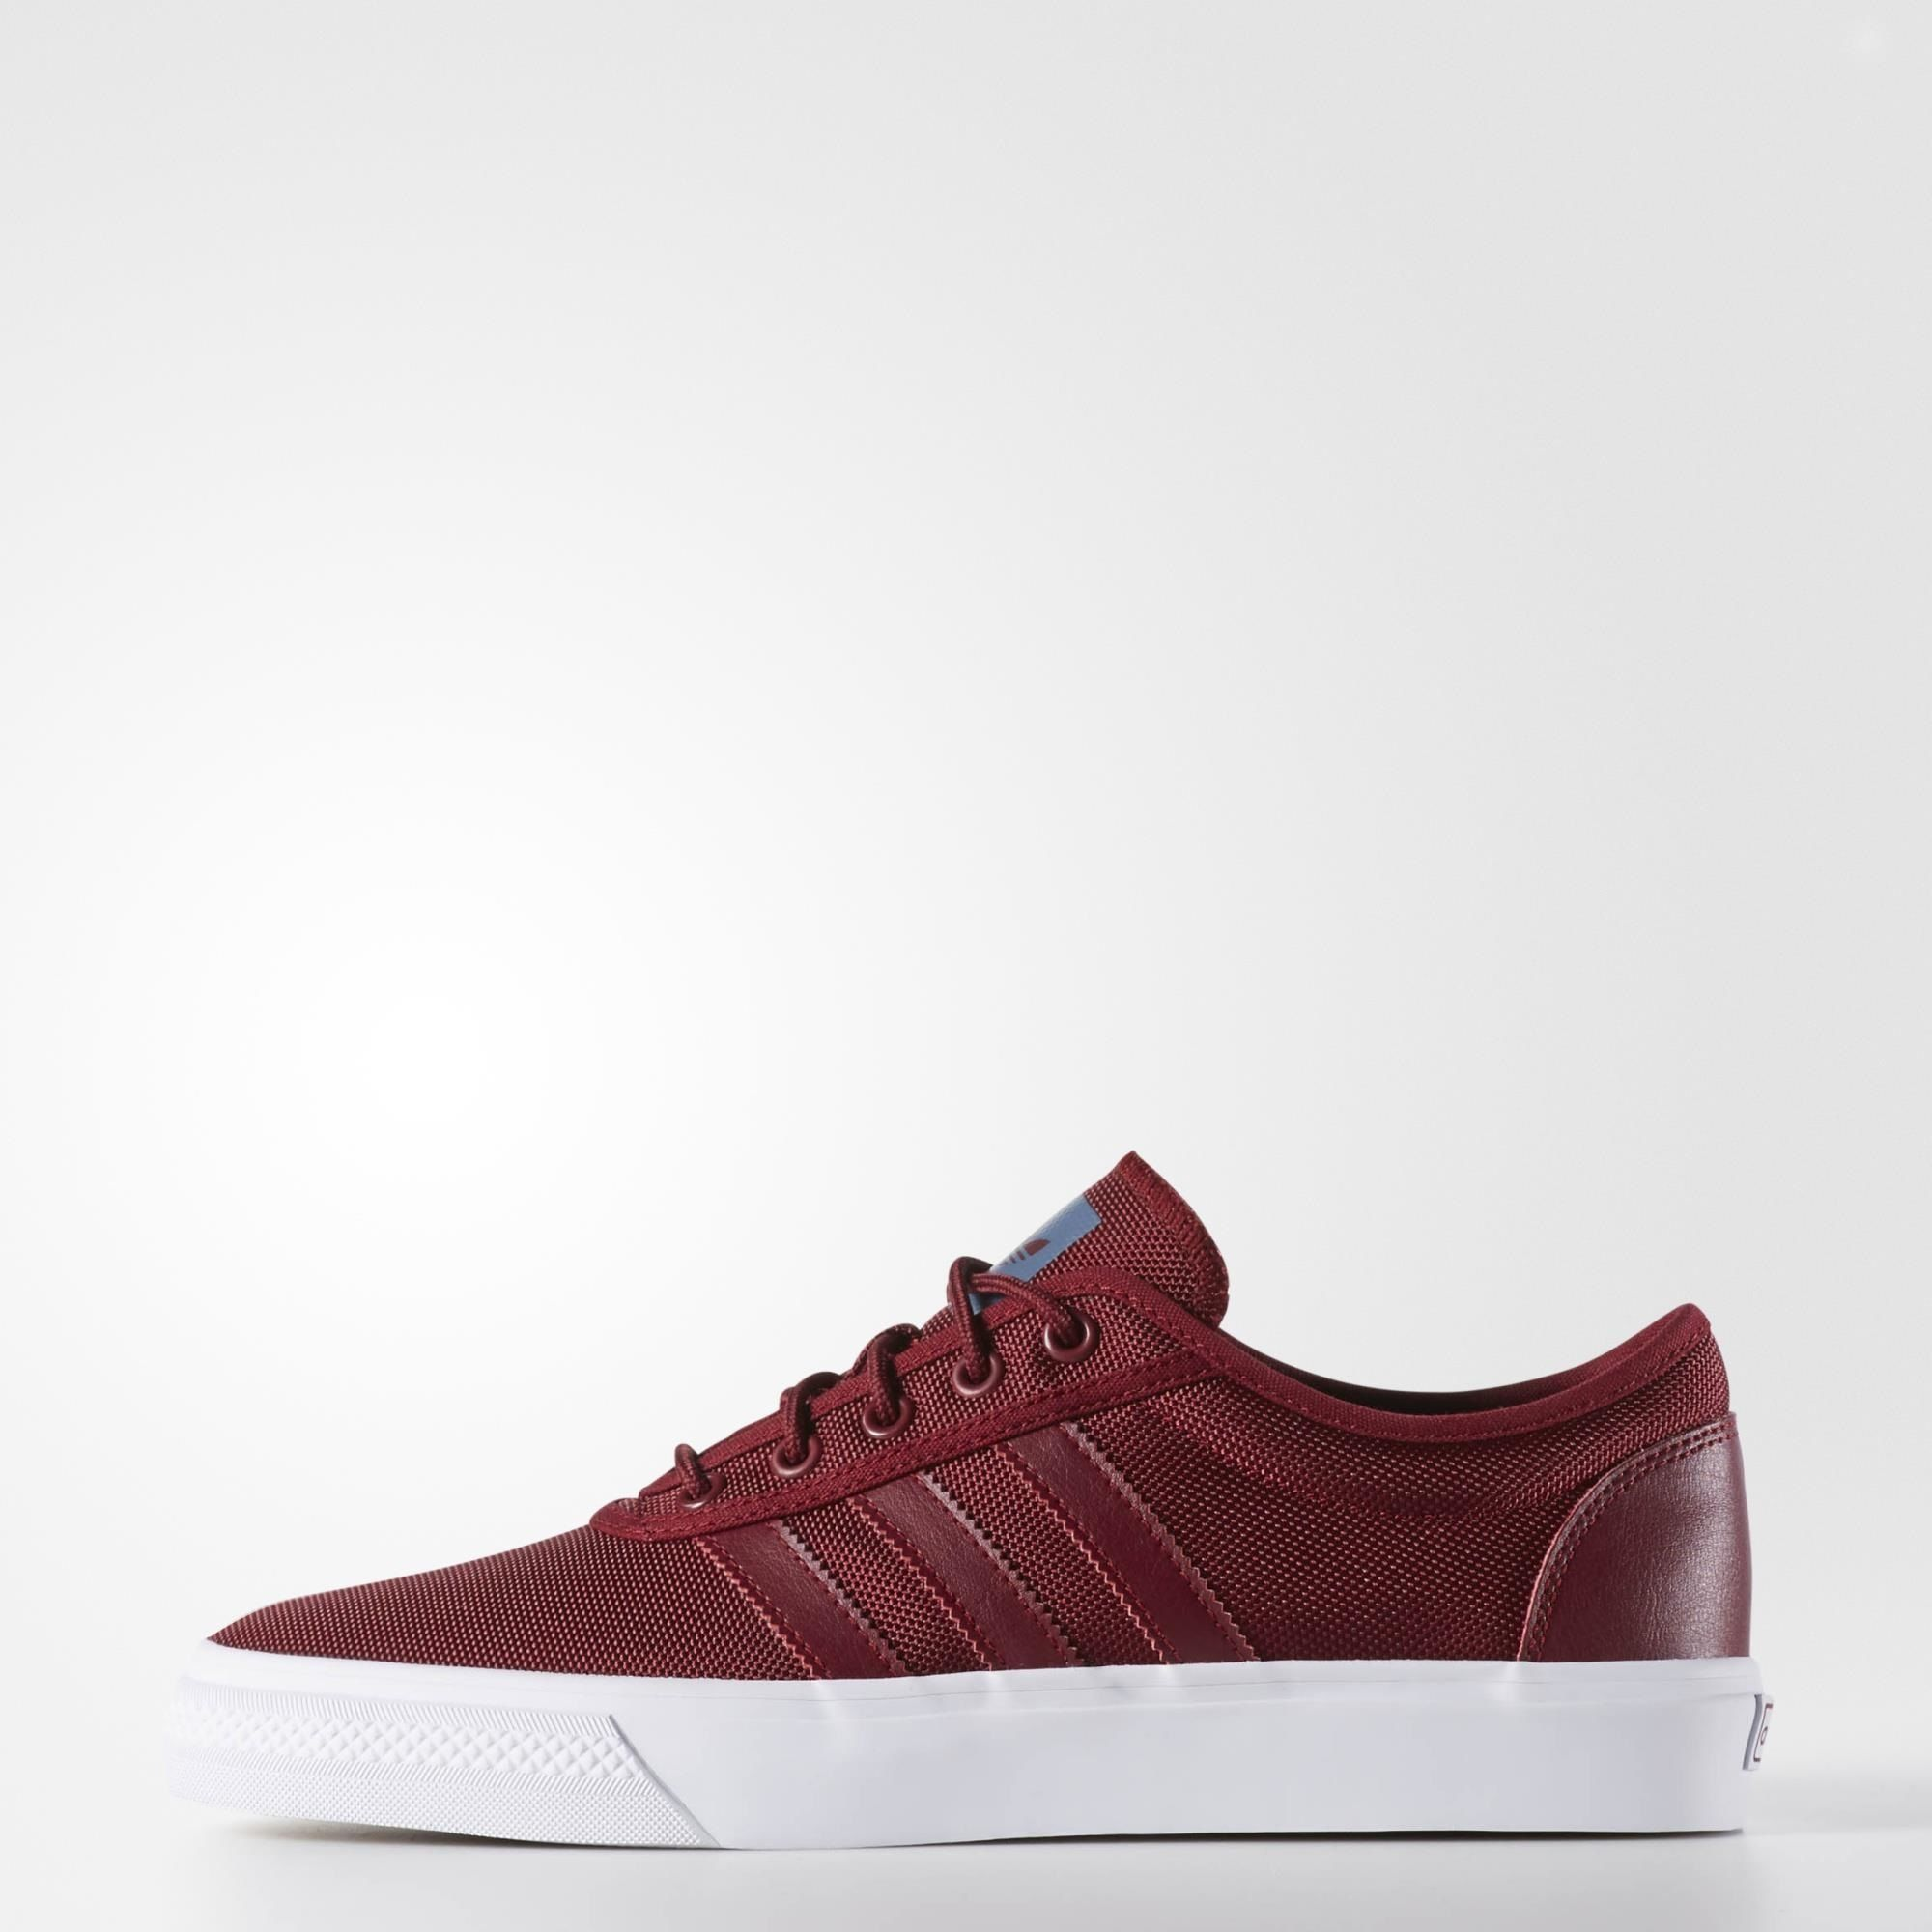 san francisco 066cb d811a Discover your potential with adidas shoes for sports and lifestyle. Find the  right shoes in our online shop today.